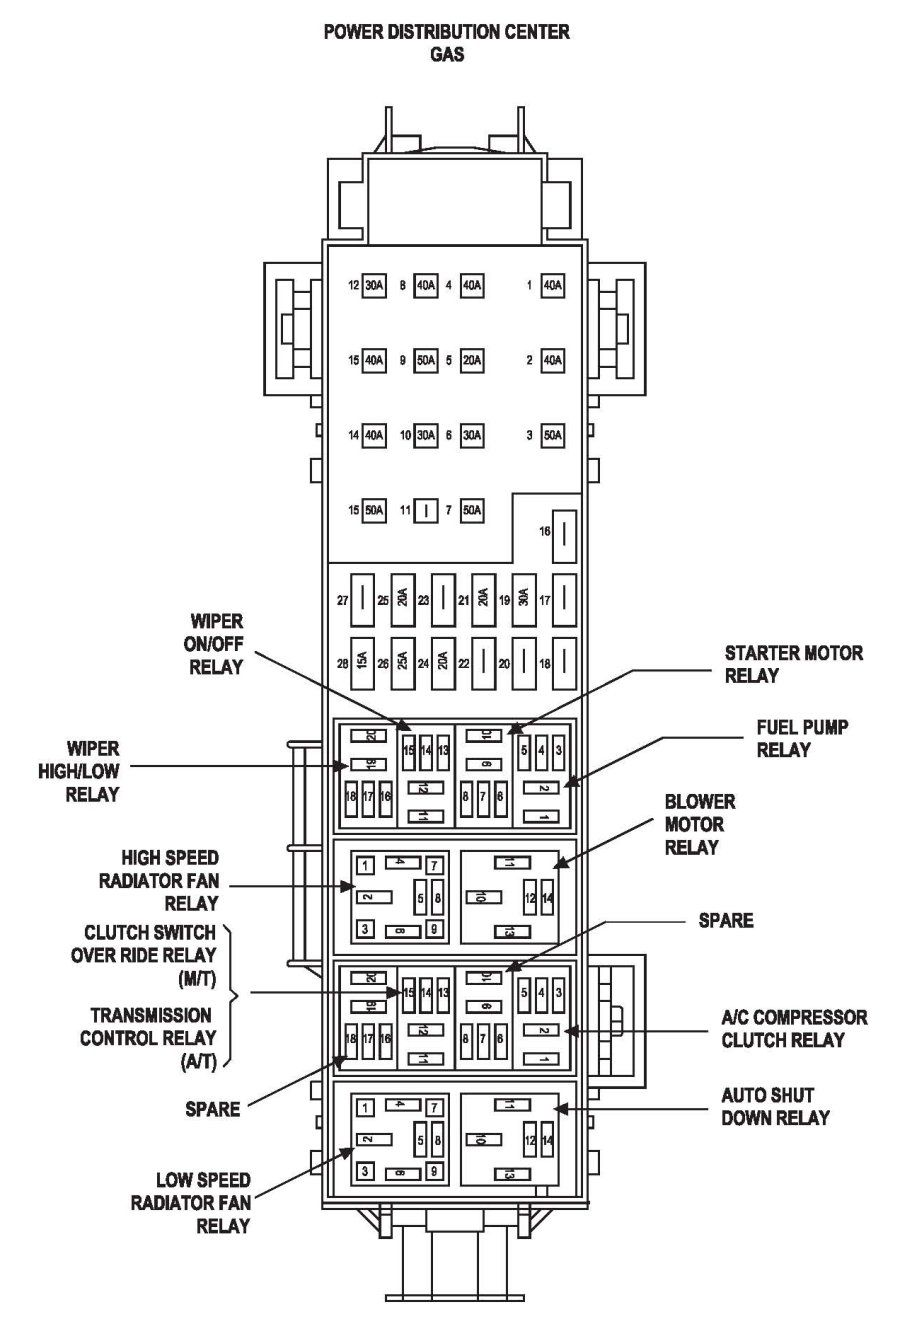 2008 dodge nitro fuse box layout wiring diagram post 2008 dodge nitro fuse box layout [ 900 x 1336 Pixel ]